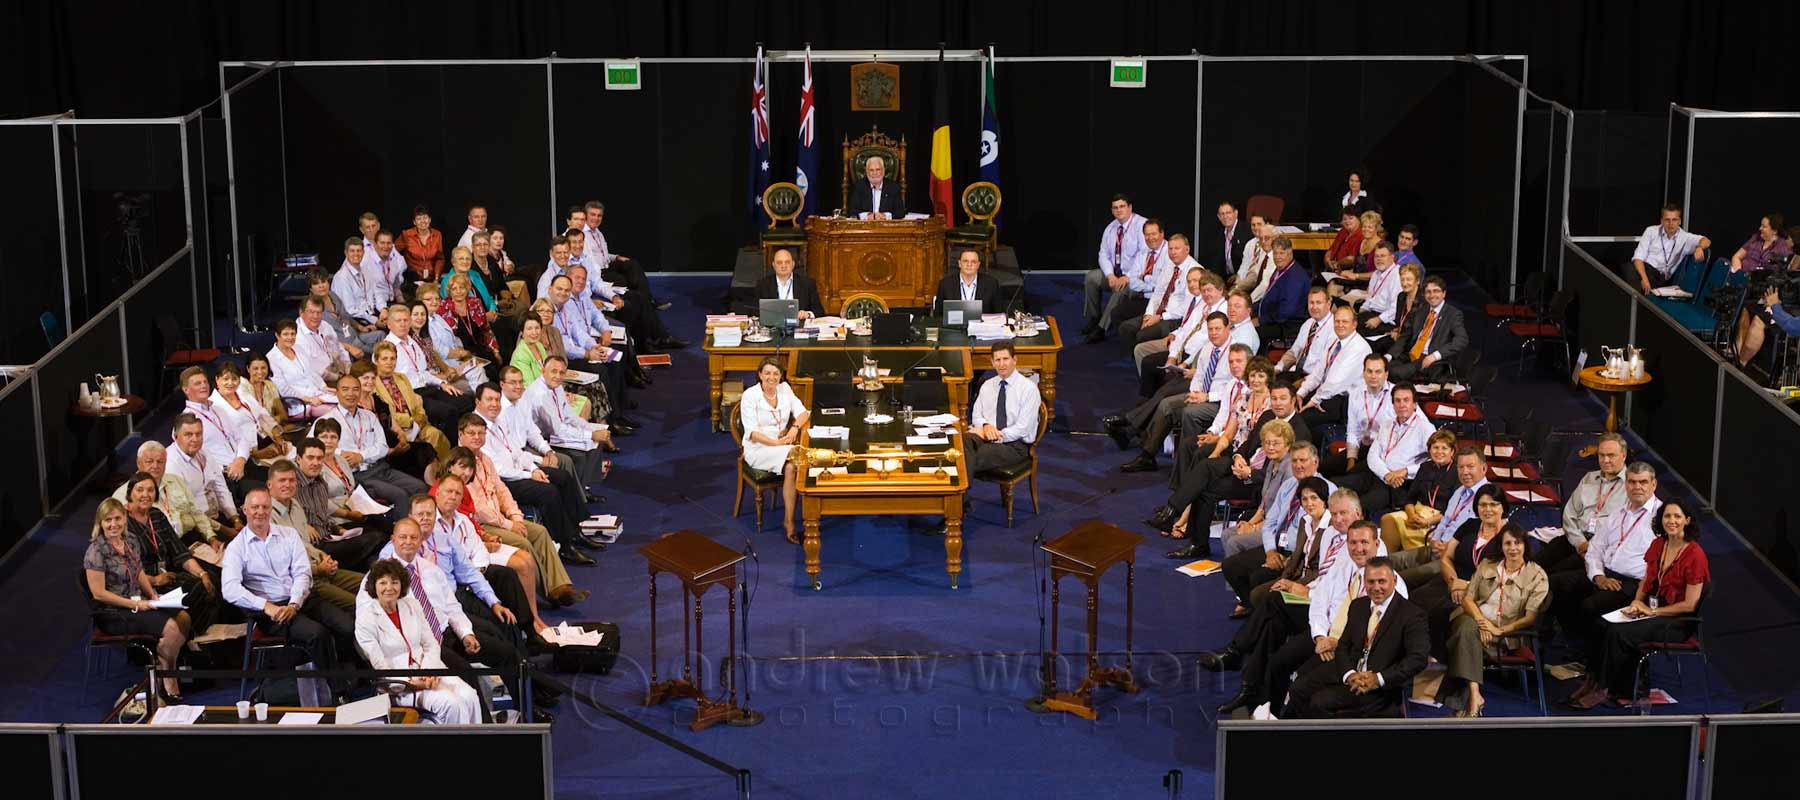 Events Photography - Images captured at FNQ Regional Parliament, Cairns Convention Centre